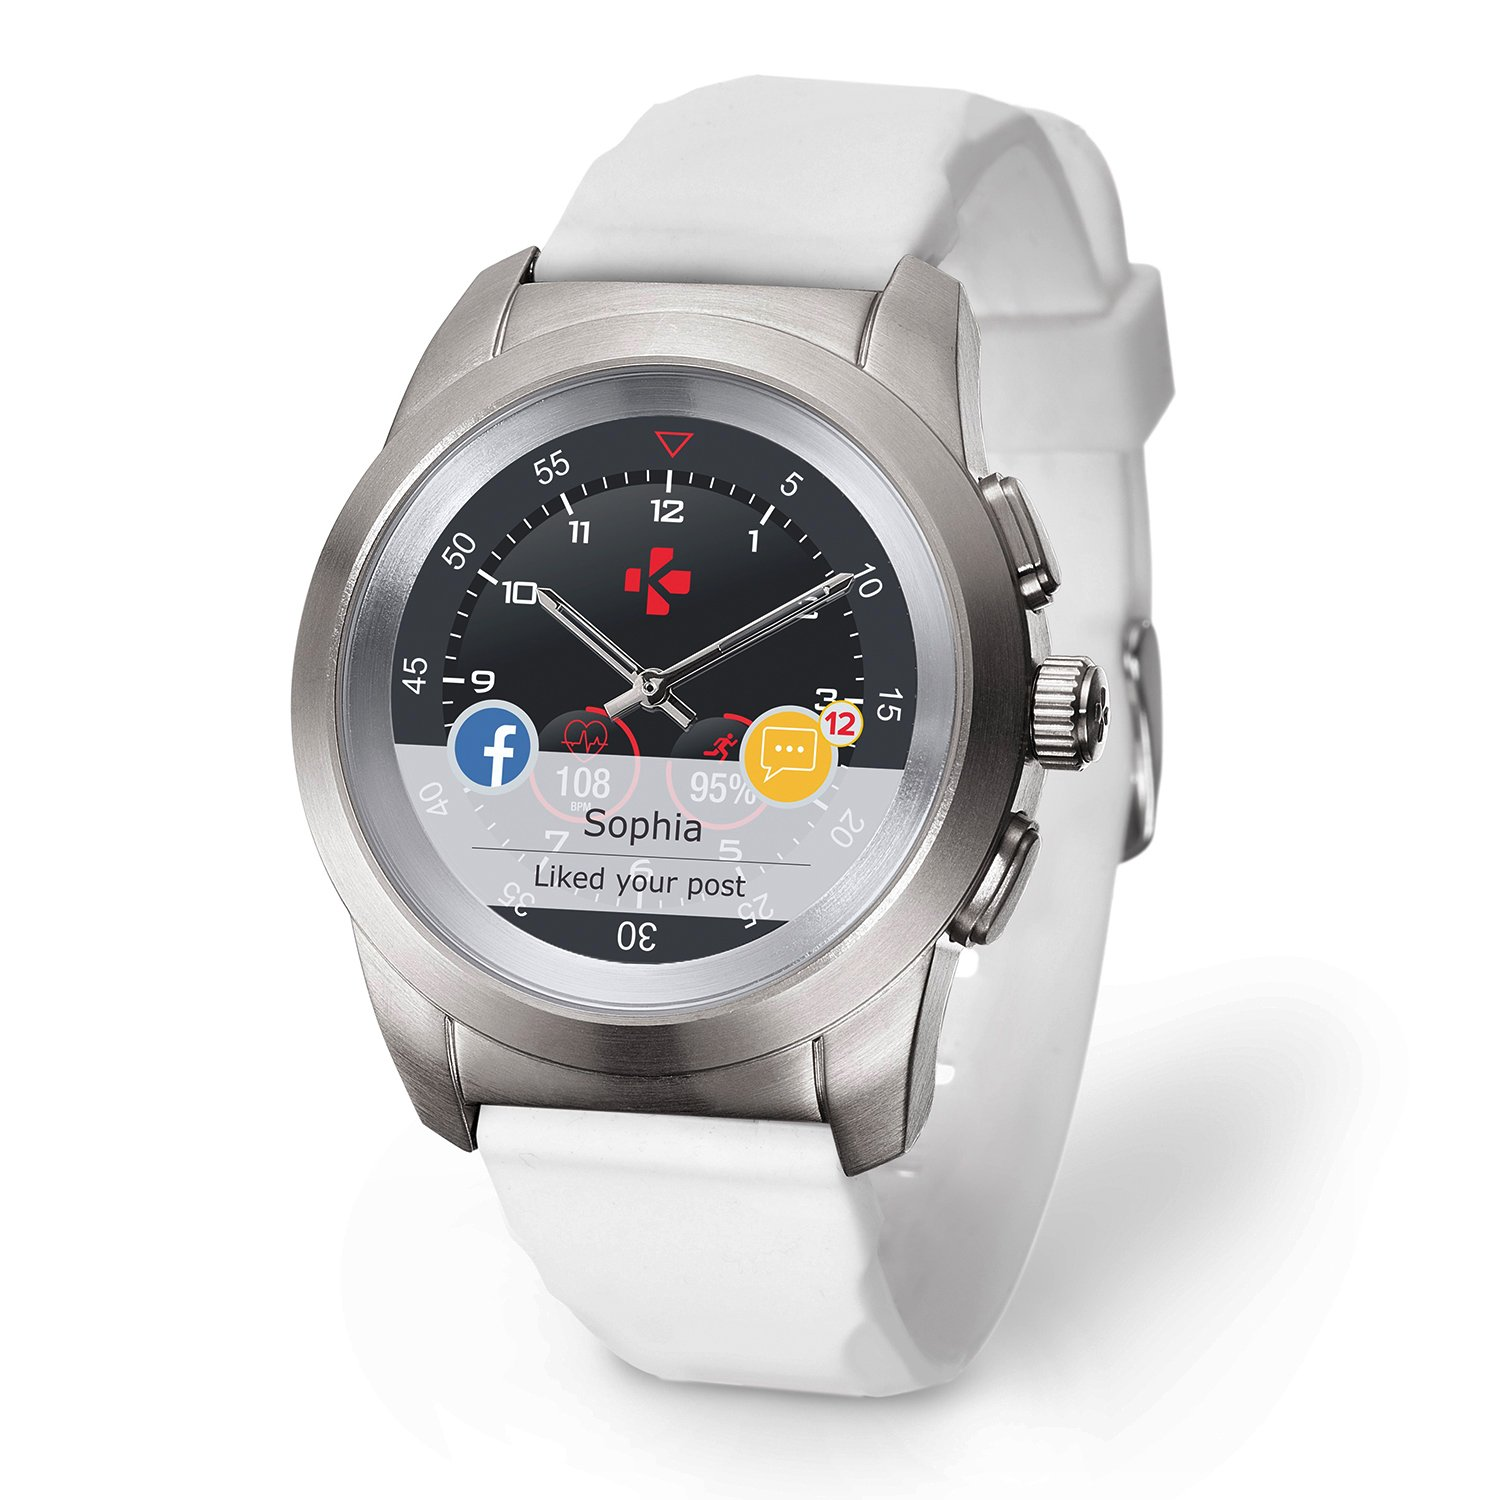 MyKronoz ZeTime Petite Original Hybrid Smartwatch 39mm with Mechanical Hands Over a Color Touch Screen, Swiss Design, iOS and Android – Brushed ...